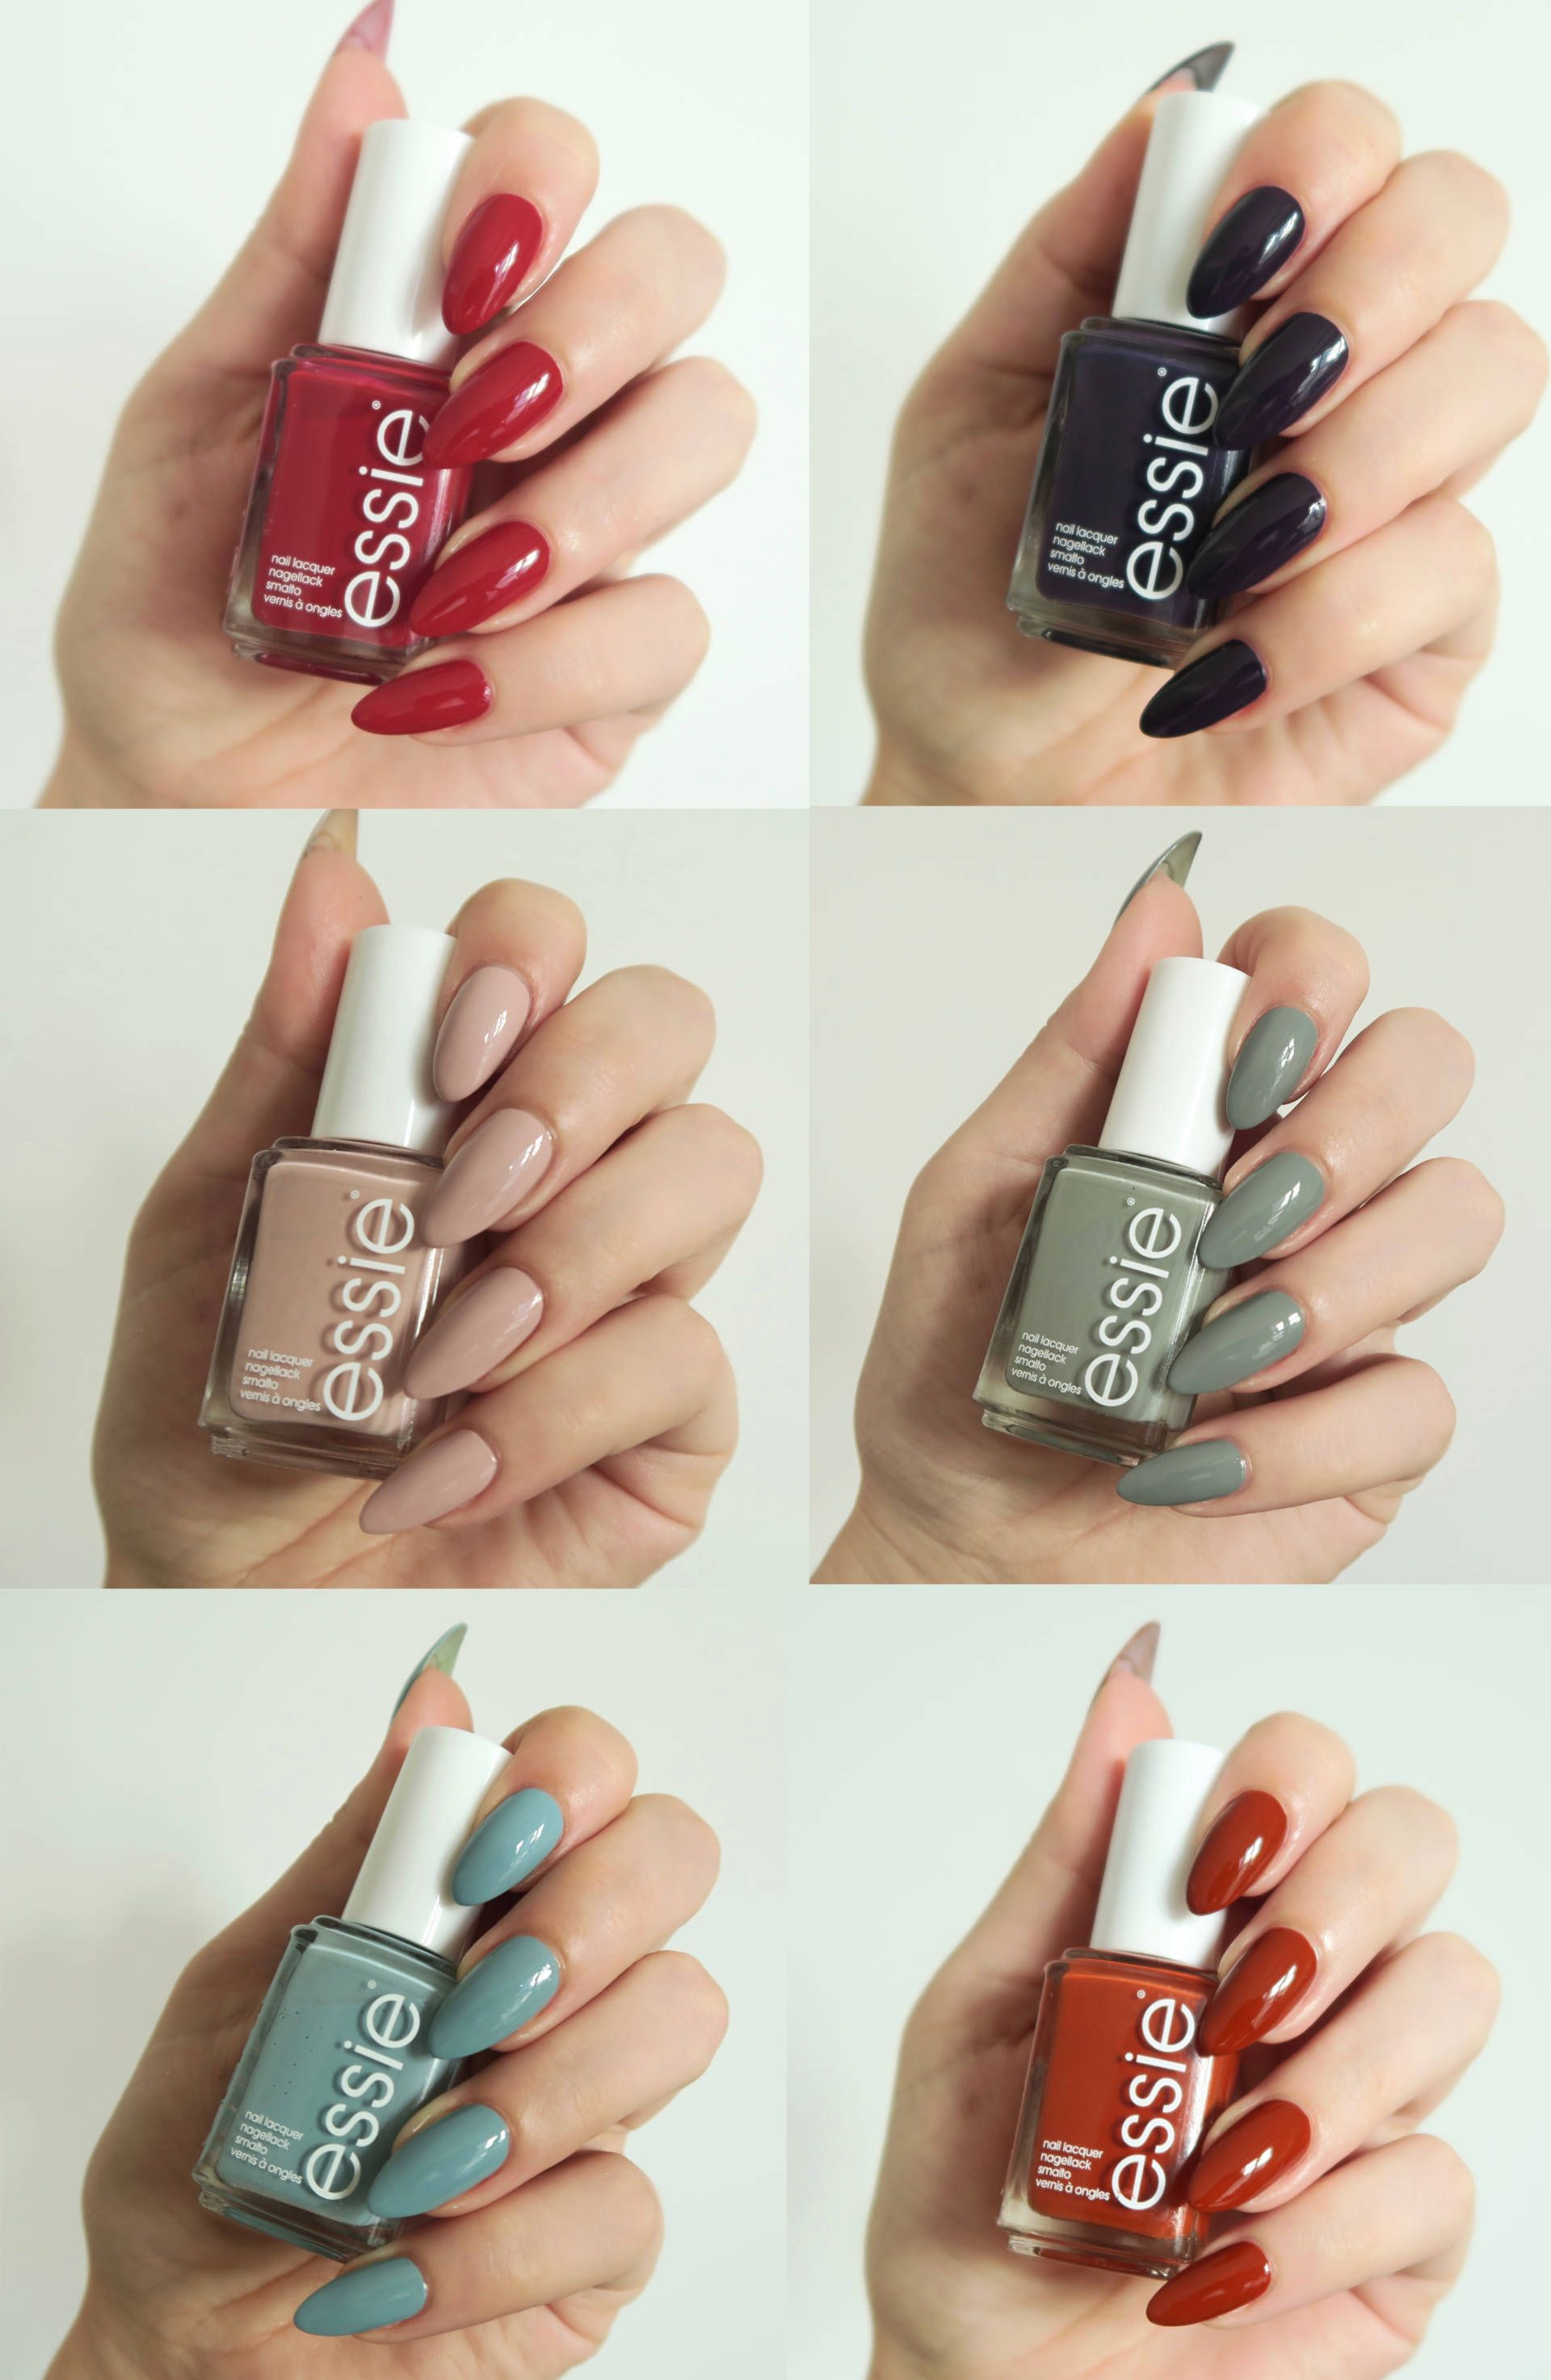 Essie Fall Collection 2016 Review - Talonted Lex Blog | Fall ...